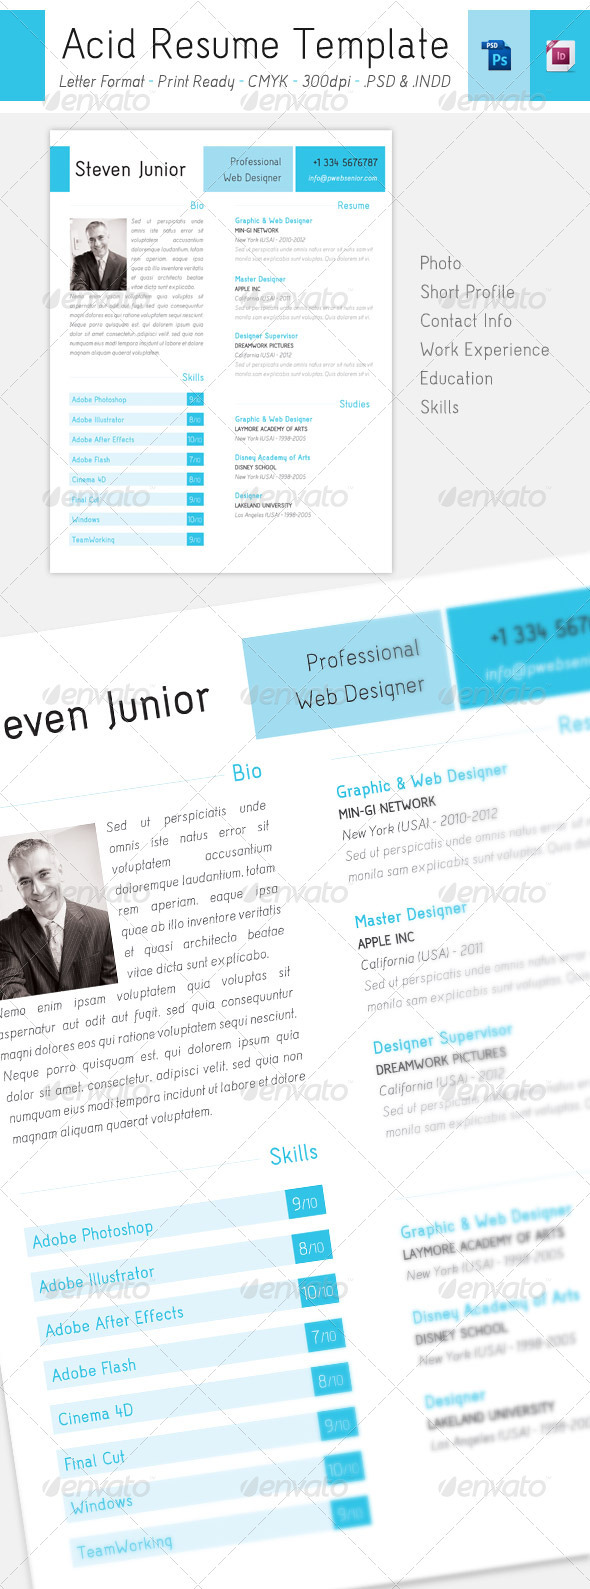 Acid Letter Resume | Modern Style - Resumes Stationery